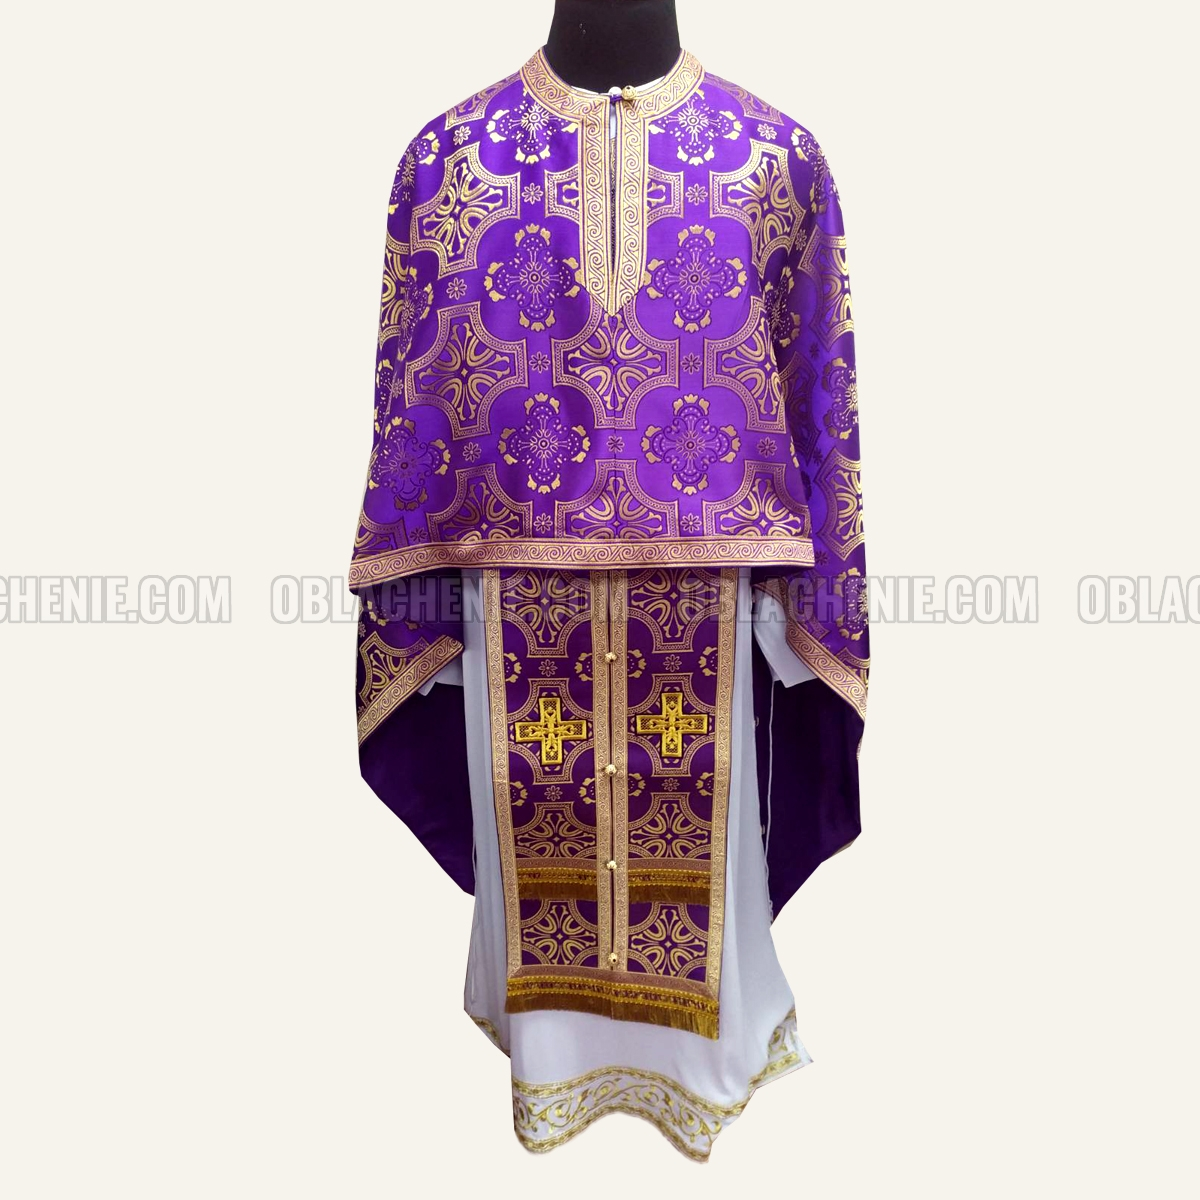 PRIEST'S VESTMENTS 10972